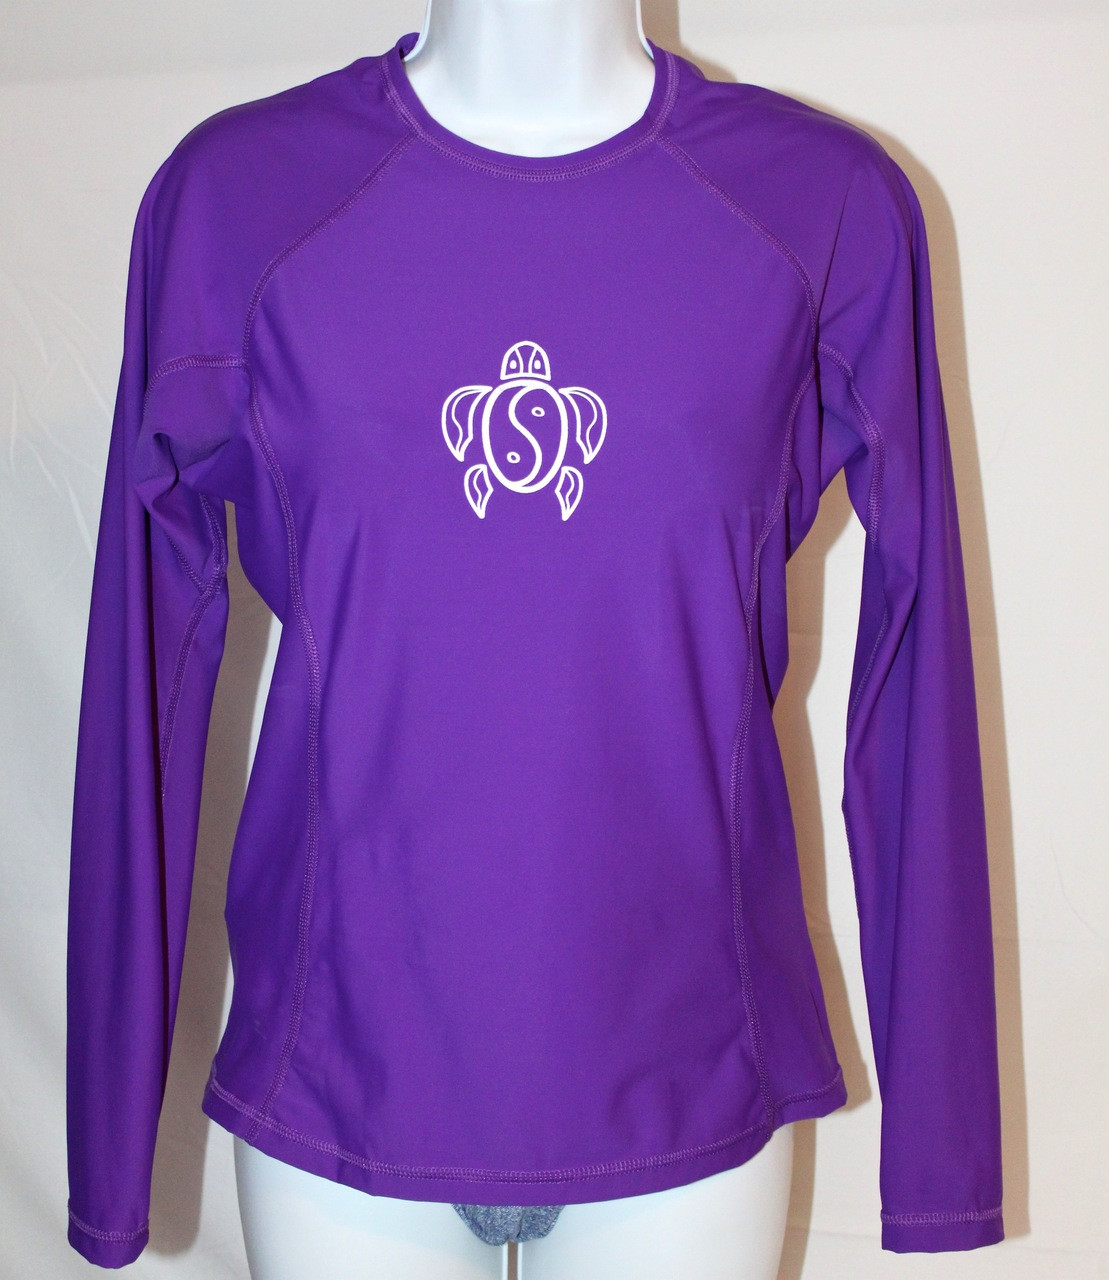 fbd5d299e ... UV Shirts; Women's Long Sleeve Purple Honu Rash Guard. Image 1. Image  1. Image 2. See 1 more picture